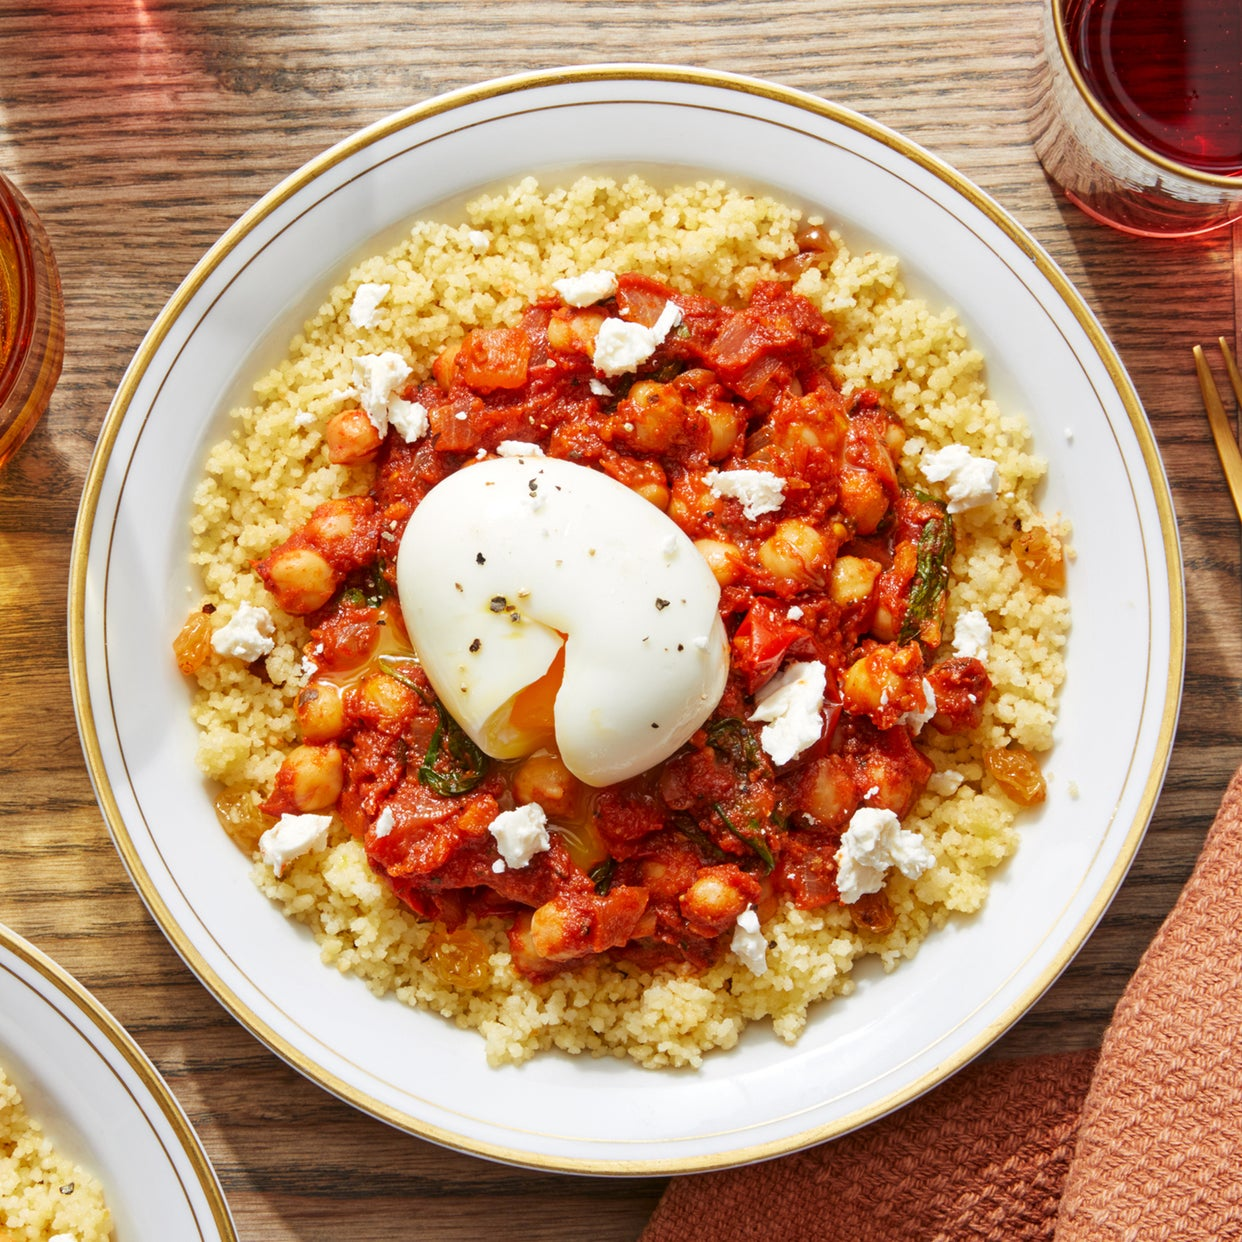 Moroccan-Style Couscous Bowls with Chickpeas, Tomatoes, & Feta Cheese